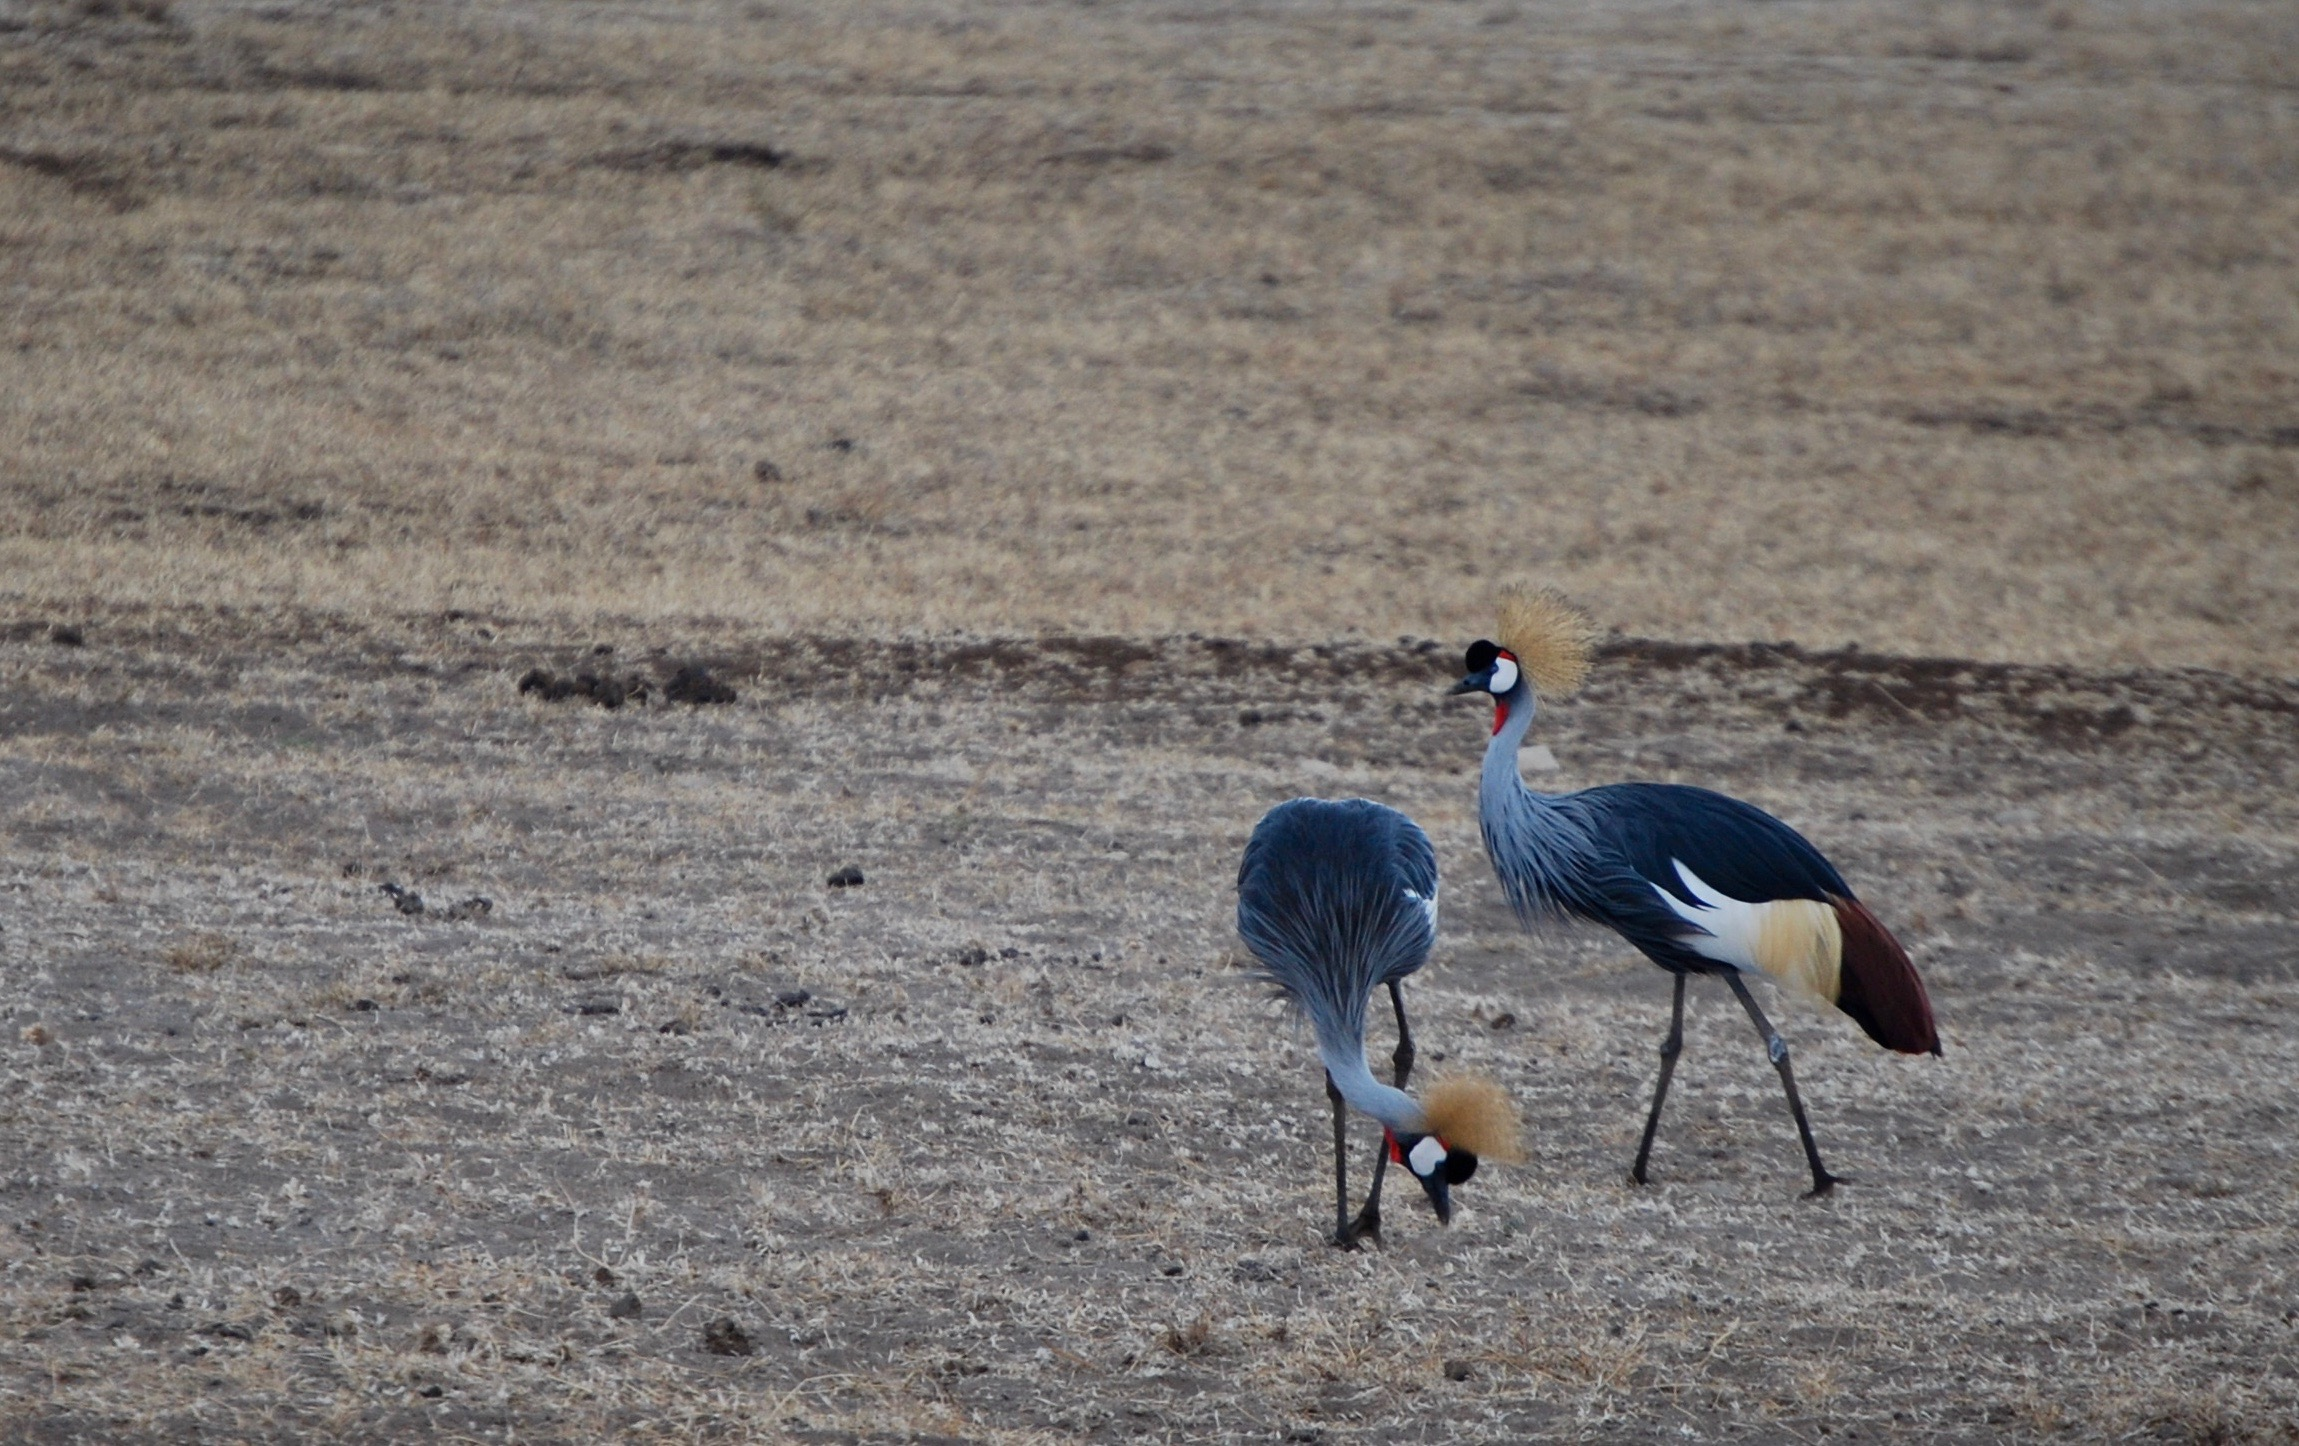 We saw these beauties in the Ngorongoro Crater.